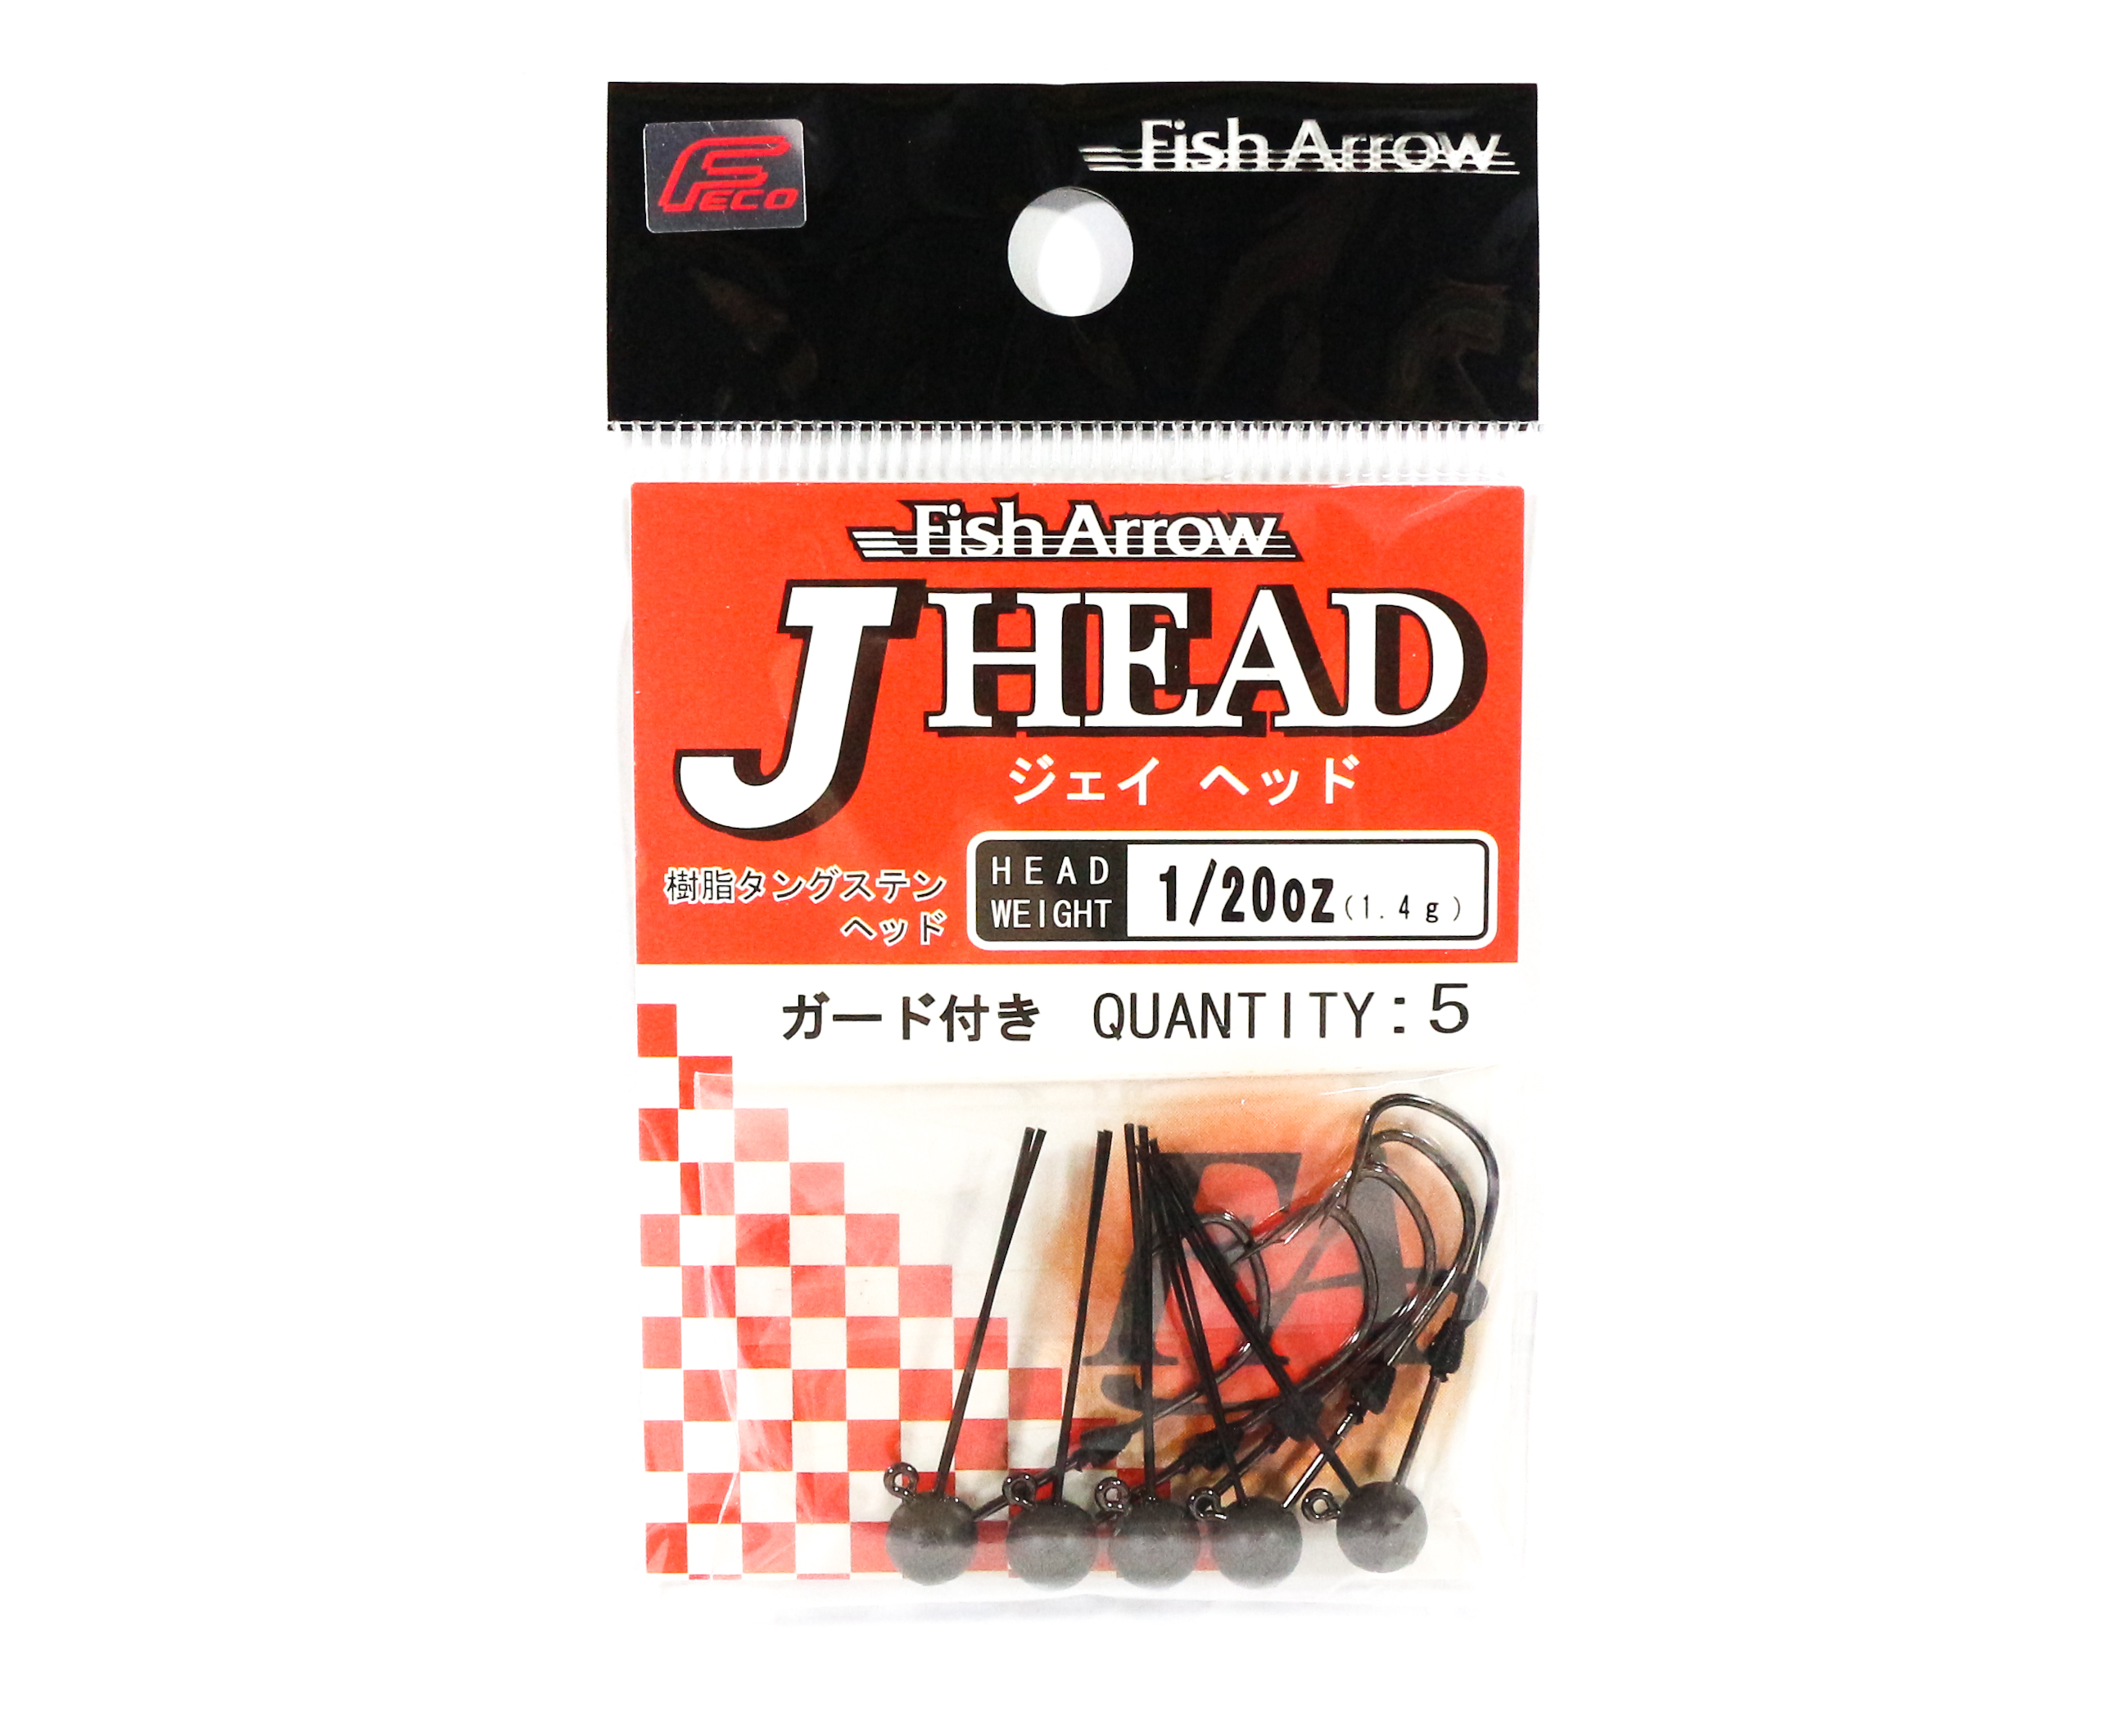 Fish Arrow Jig Head J Head with Guard 1.4 grams Size 4 5 Pc per pack (3530)